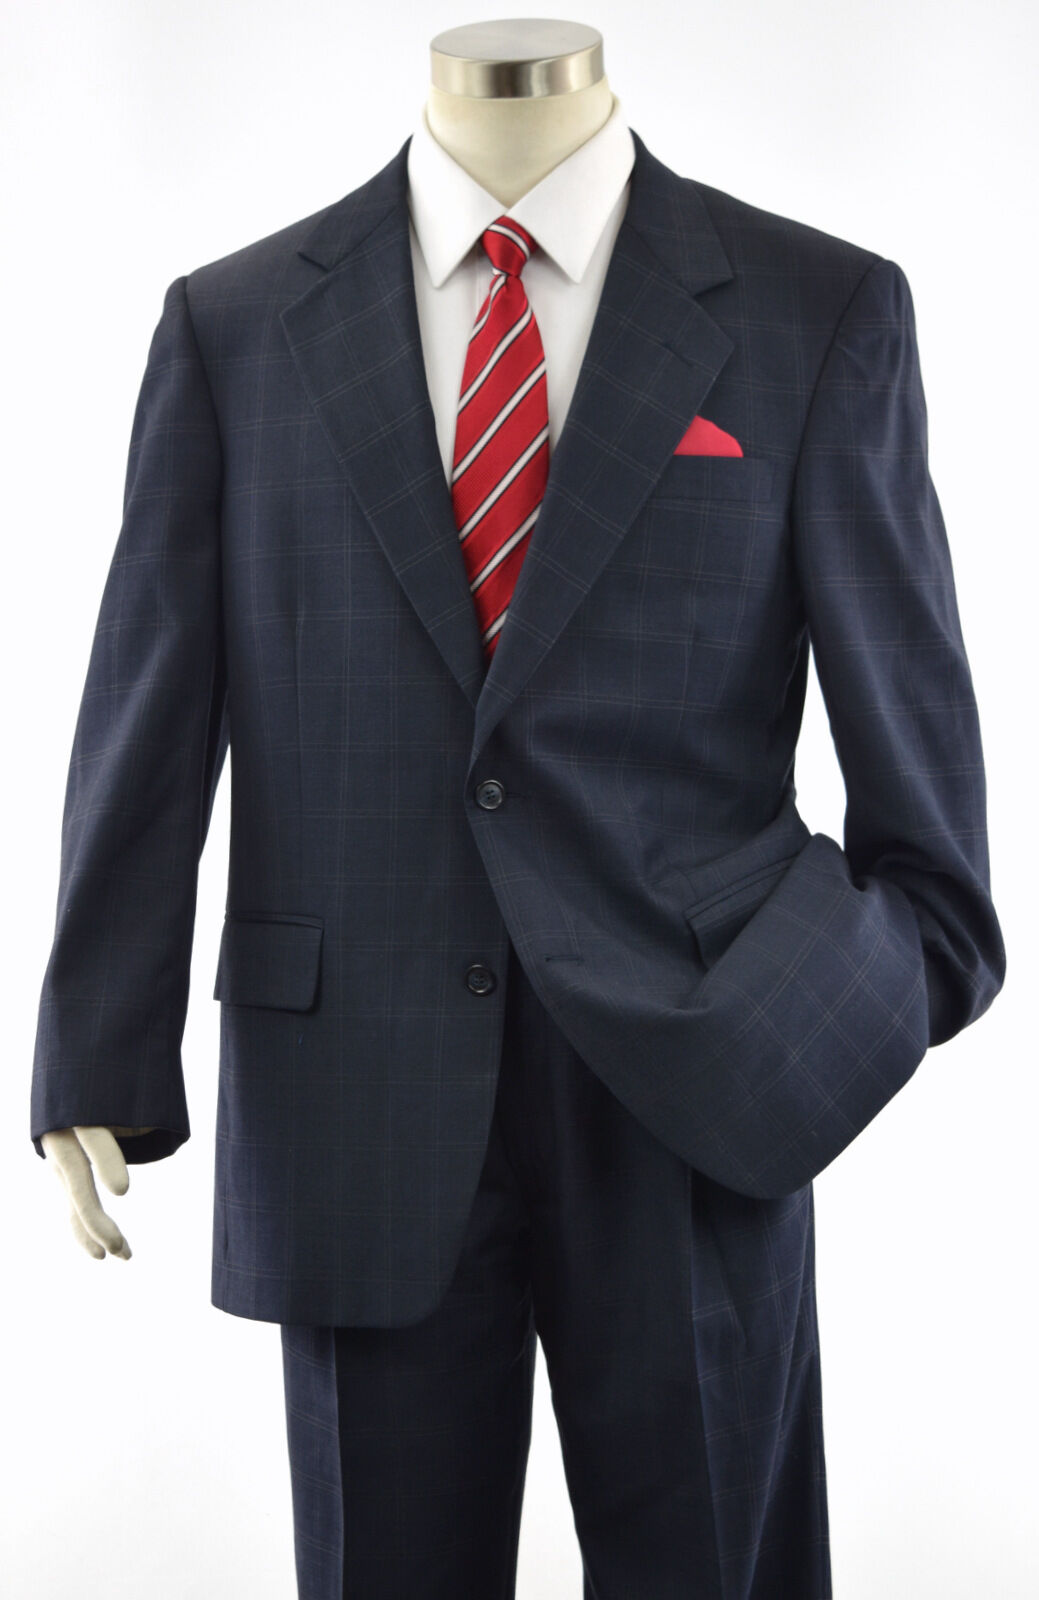 JOS A BANK Men's Navy bluee Windowpane 2-Btn SIGNATURE Wool Suit  40R USA MADE